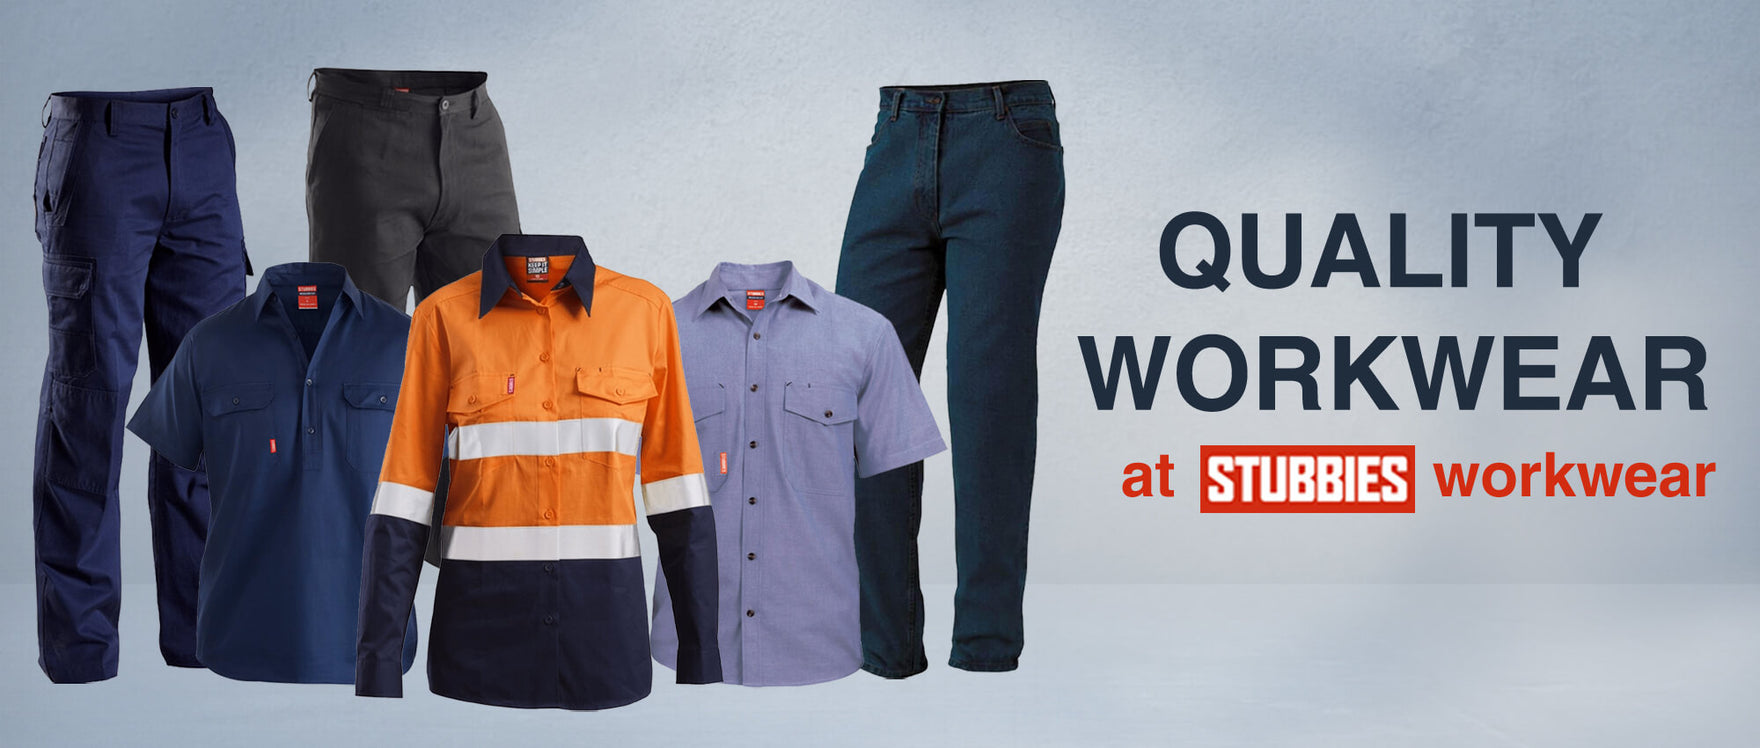 Quality Workwear at Stubbies Workwear